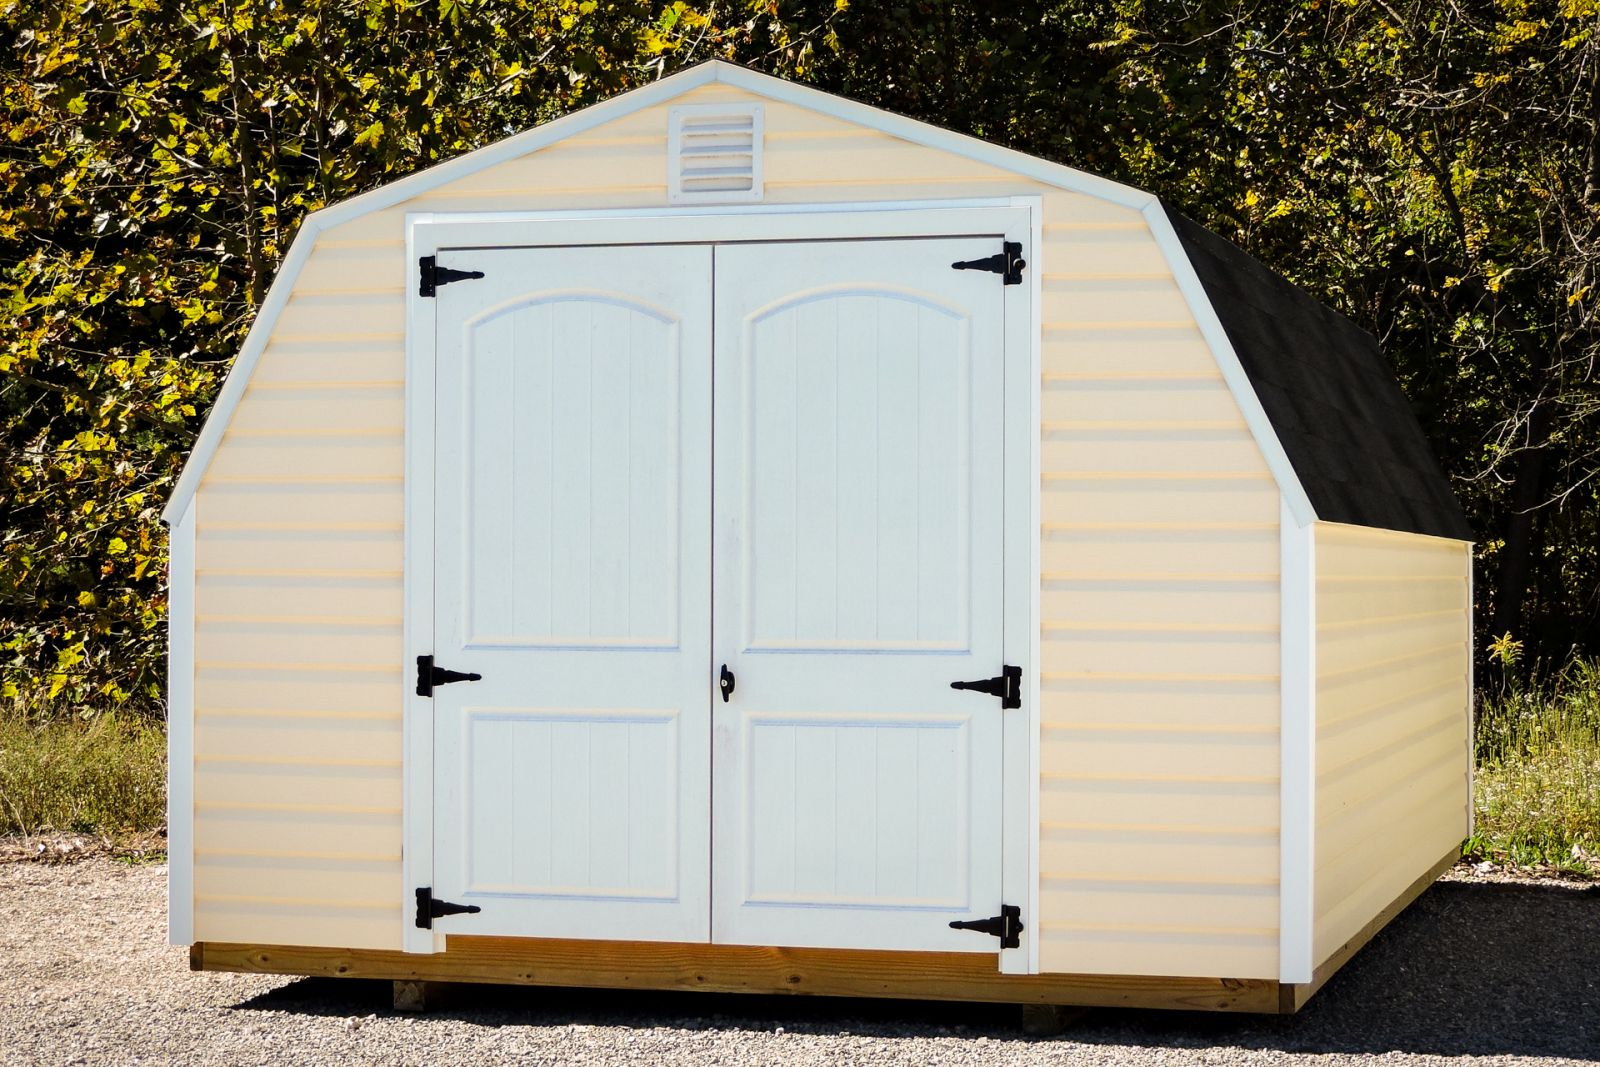 Photos of Portable Sheds in KY & TN | Esh's Utility Buildings